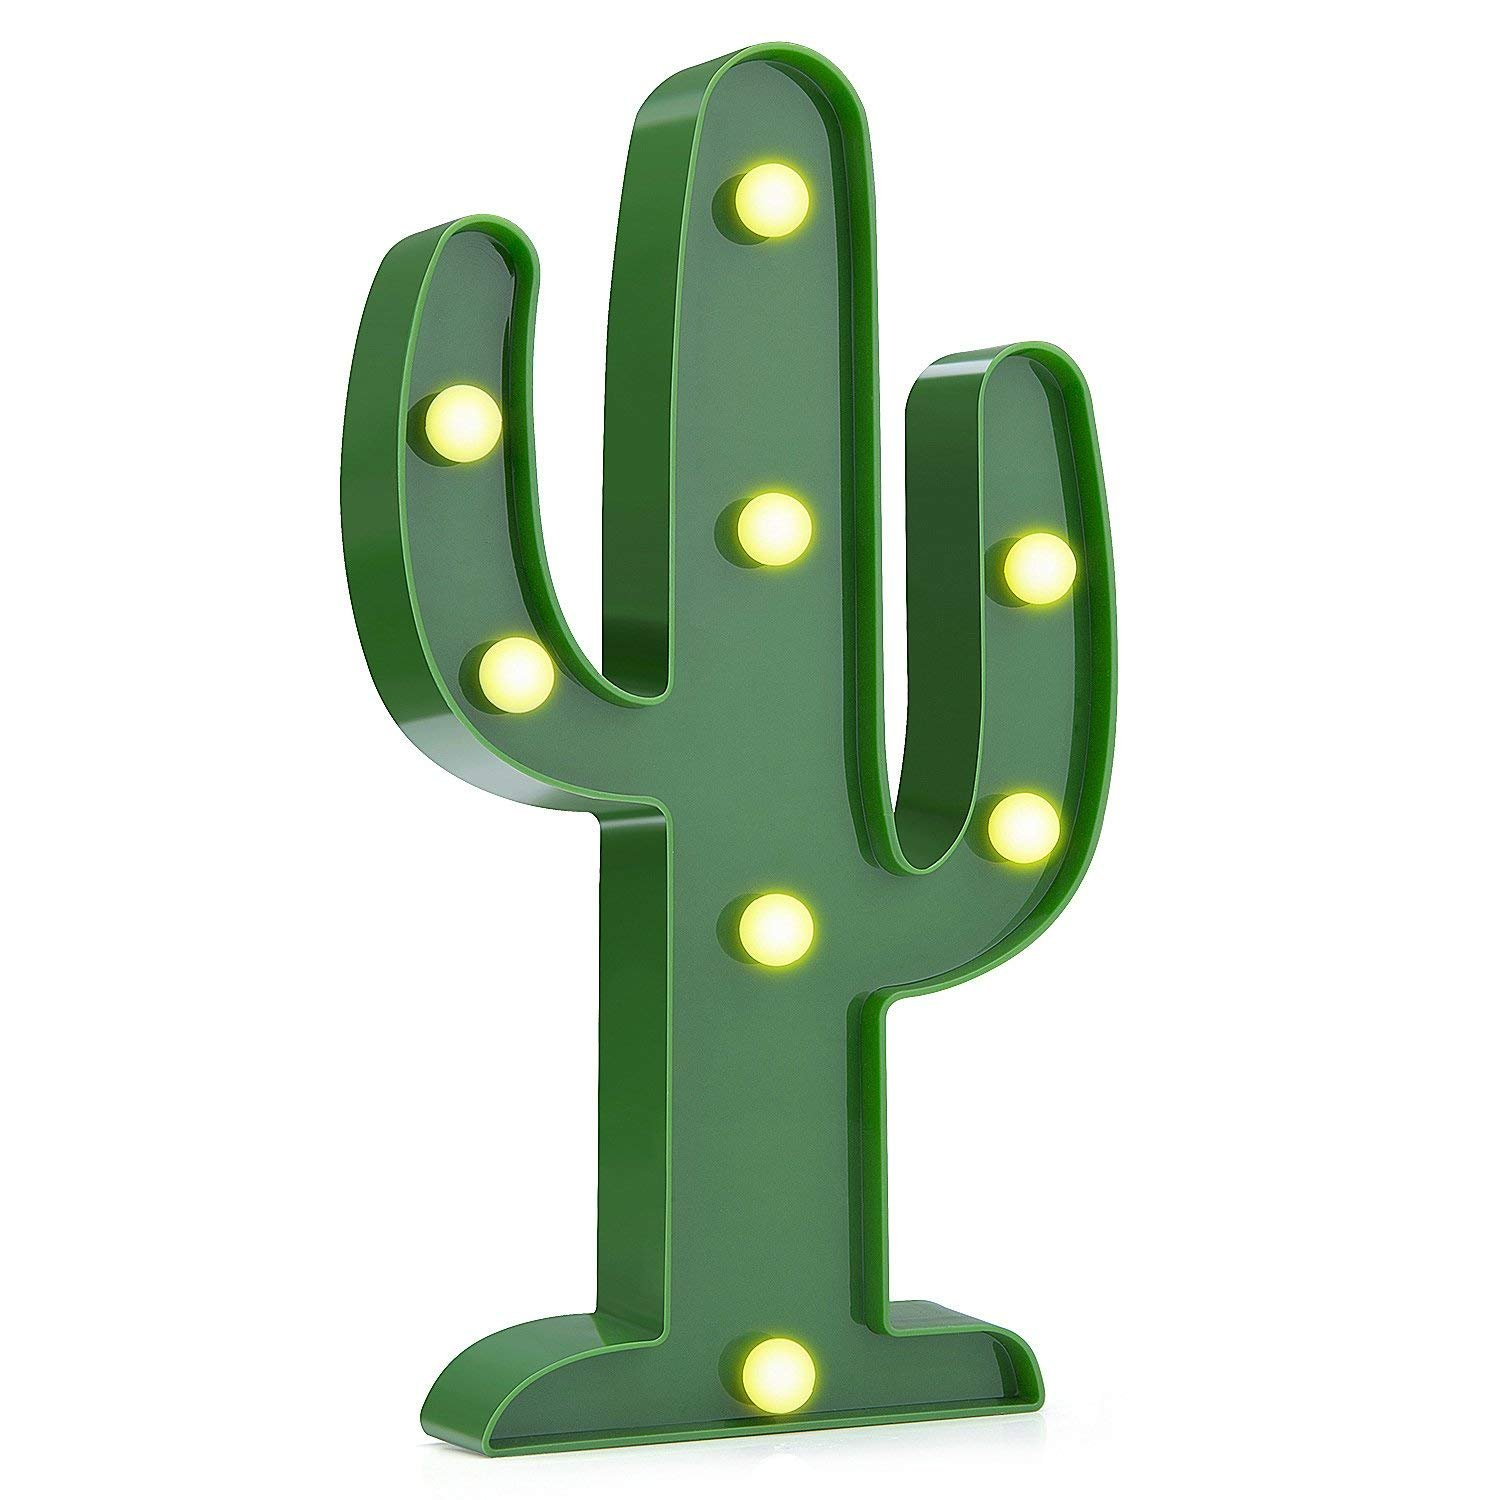 Wsxxn Table Lamp, LED Night Light Romantic Battery-operated Table Lamp Home Party Christmas Lighting Fixture (Cactus)